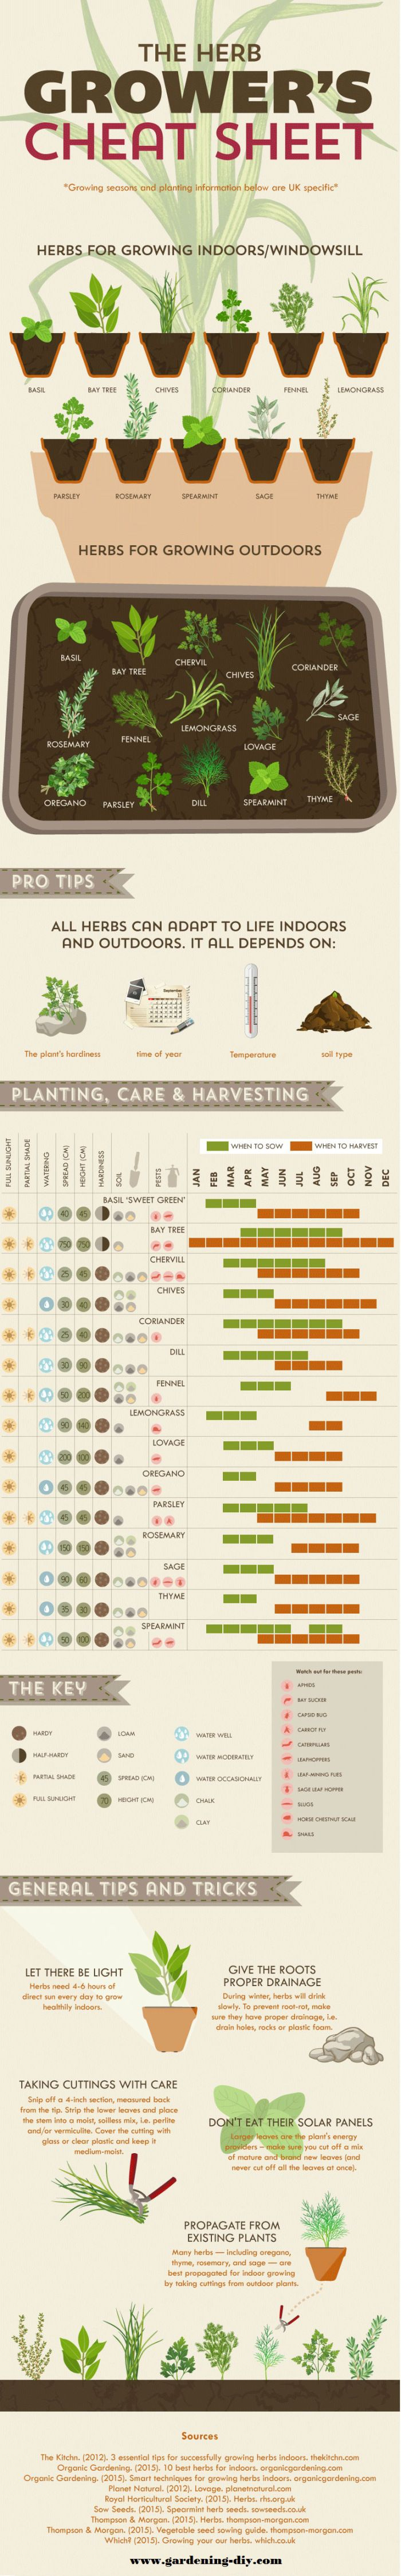 Good To Be Home Herb Growing Cheat Sheet